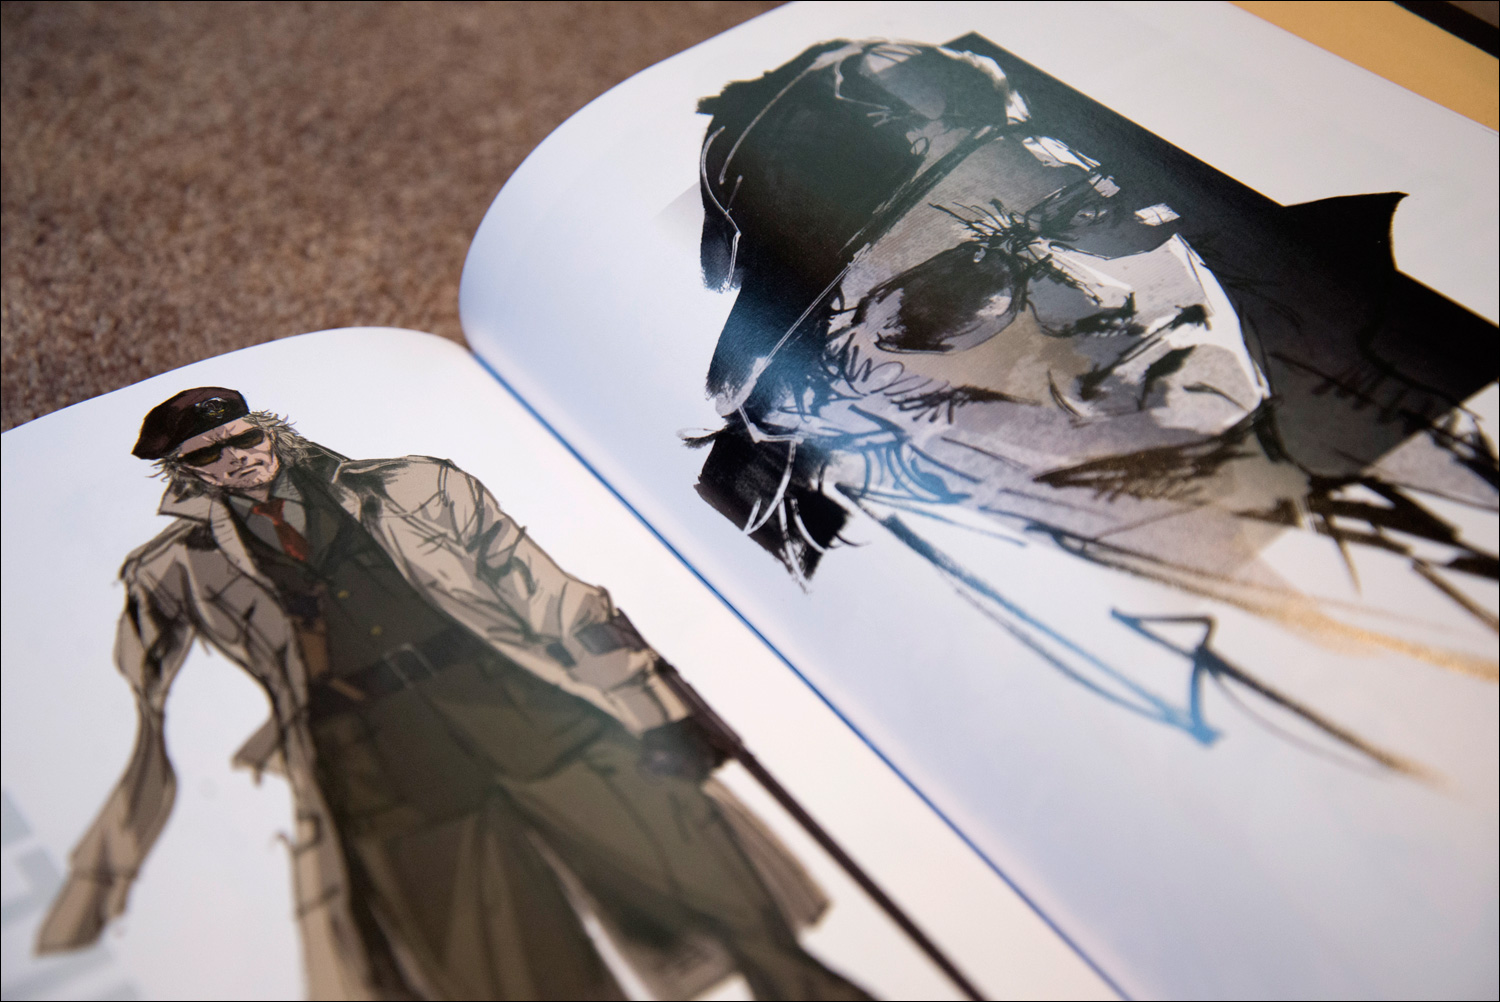 Metal-Gear-Solid-V-The-Phantom-Pain-Collector's-Edition-Kaz-Art